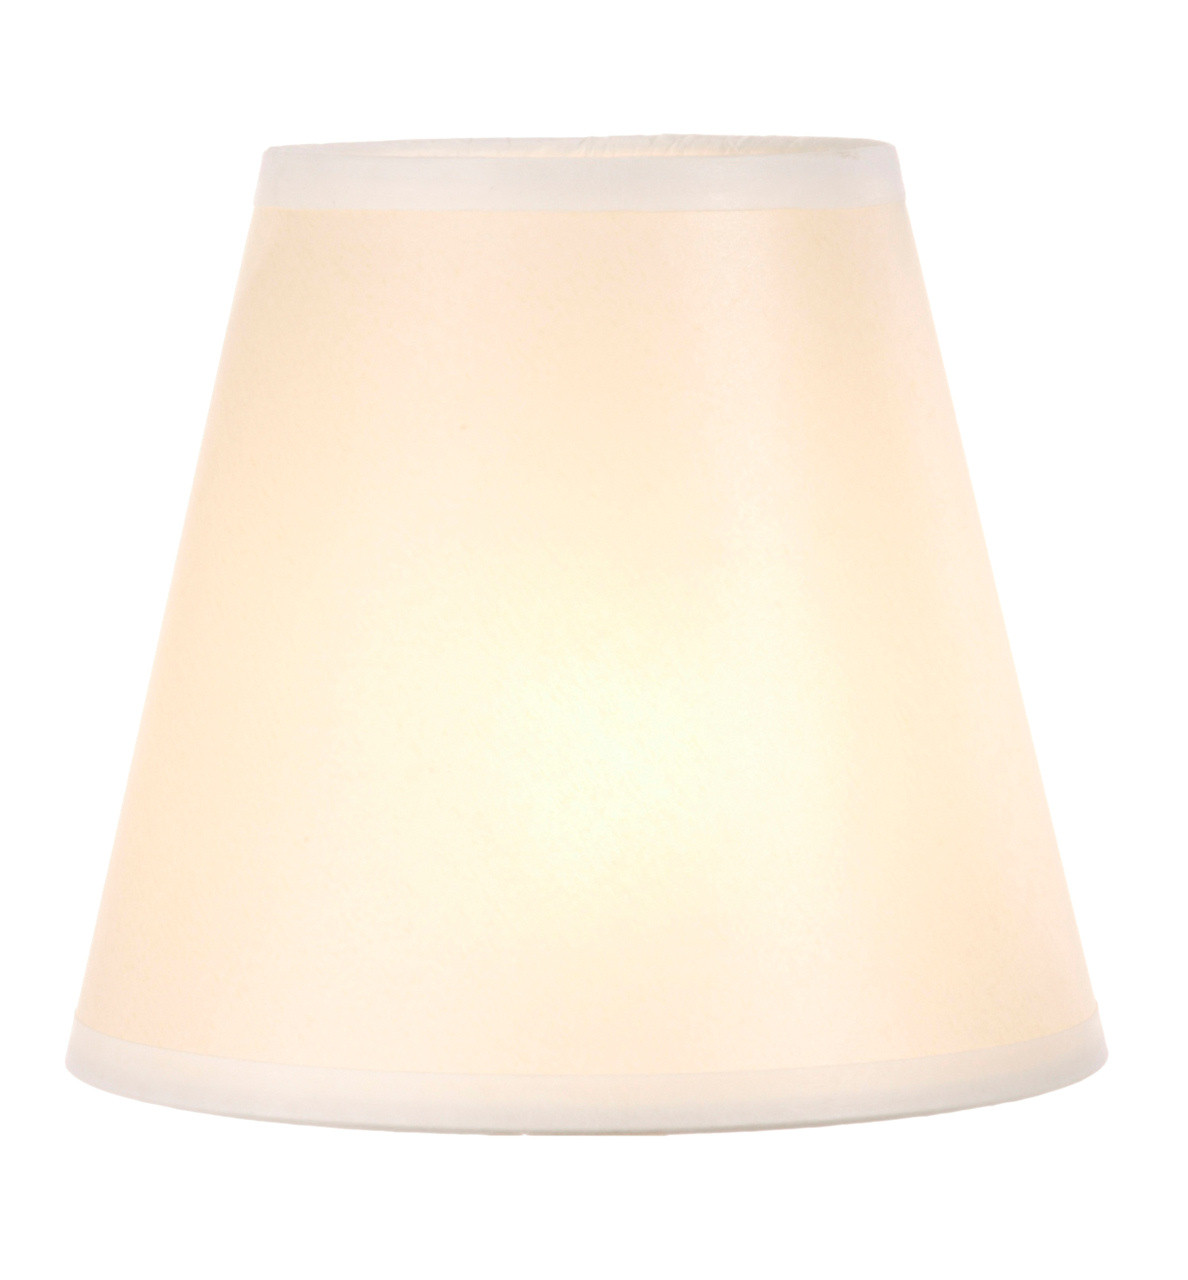 Ivory Glow Hand Forged Iron Table Lamp Shade 14 Inch By 9 Inch